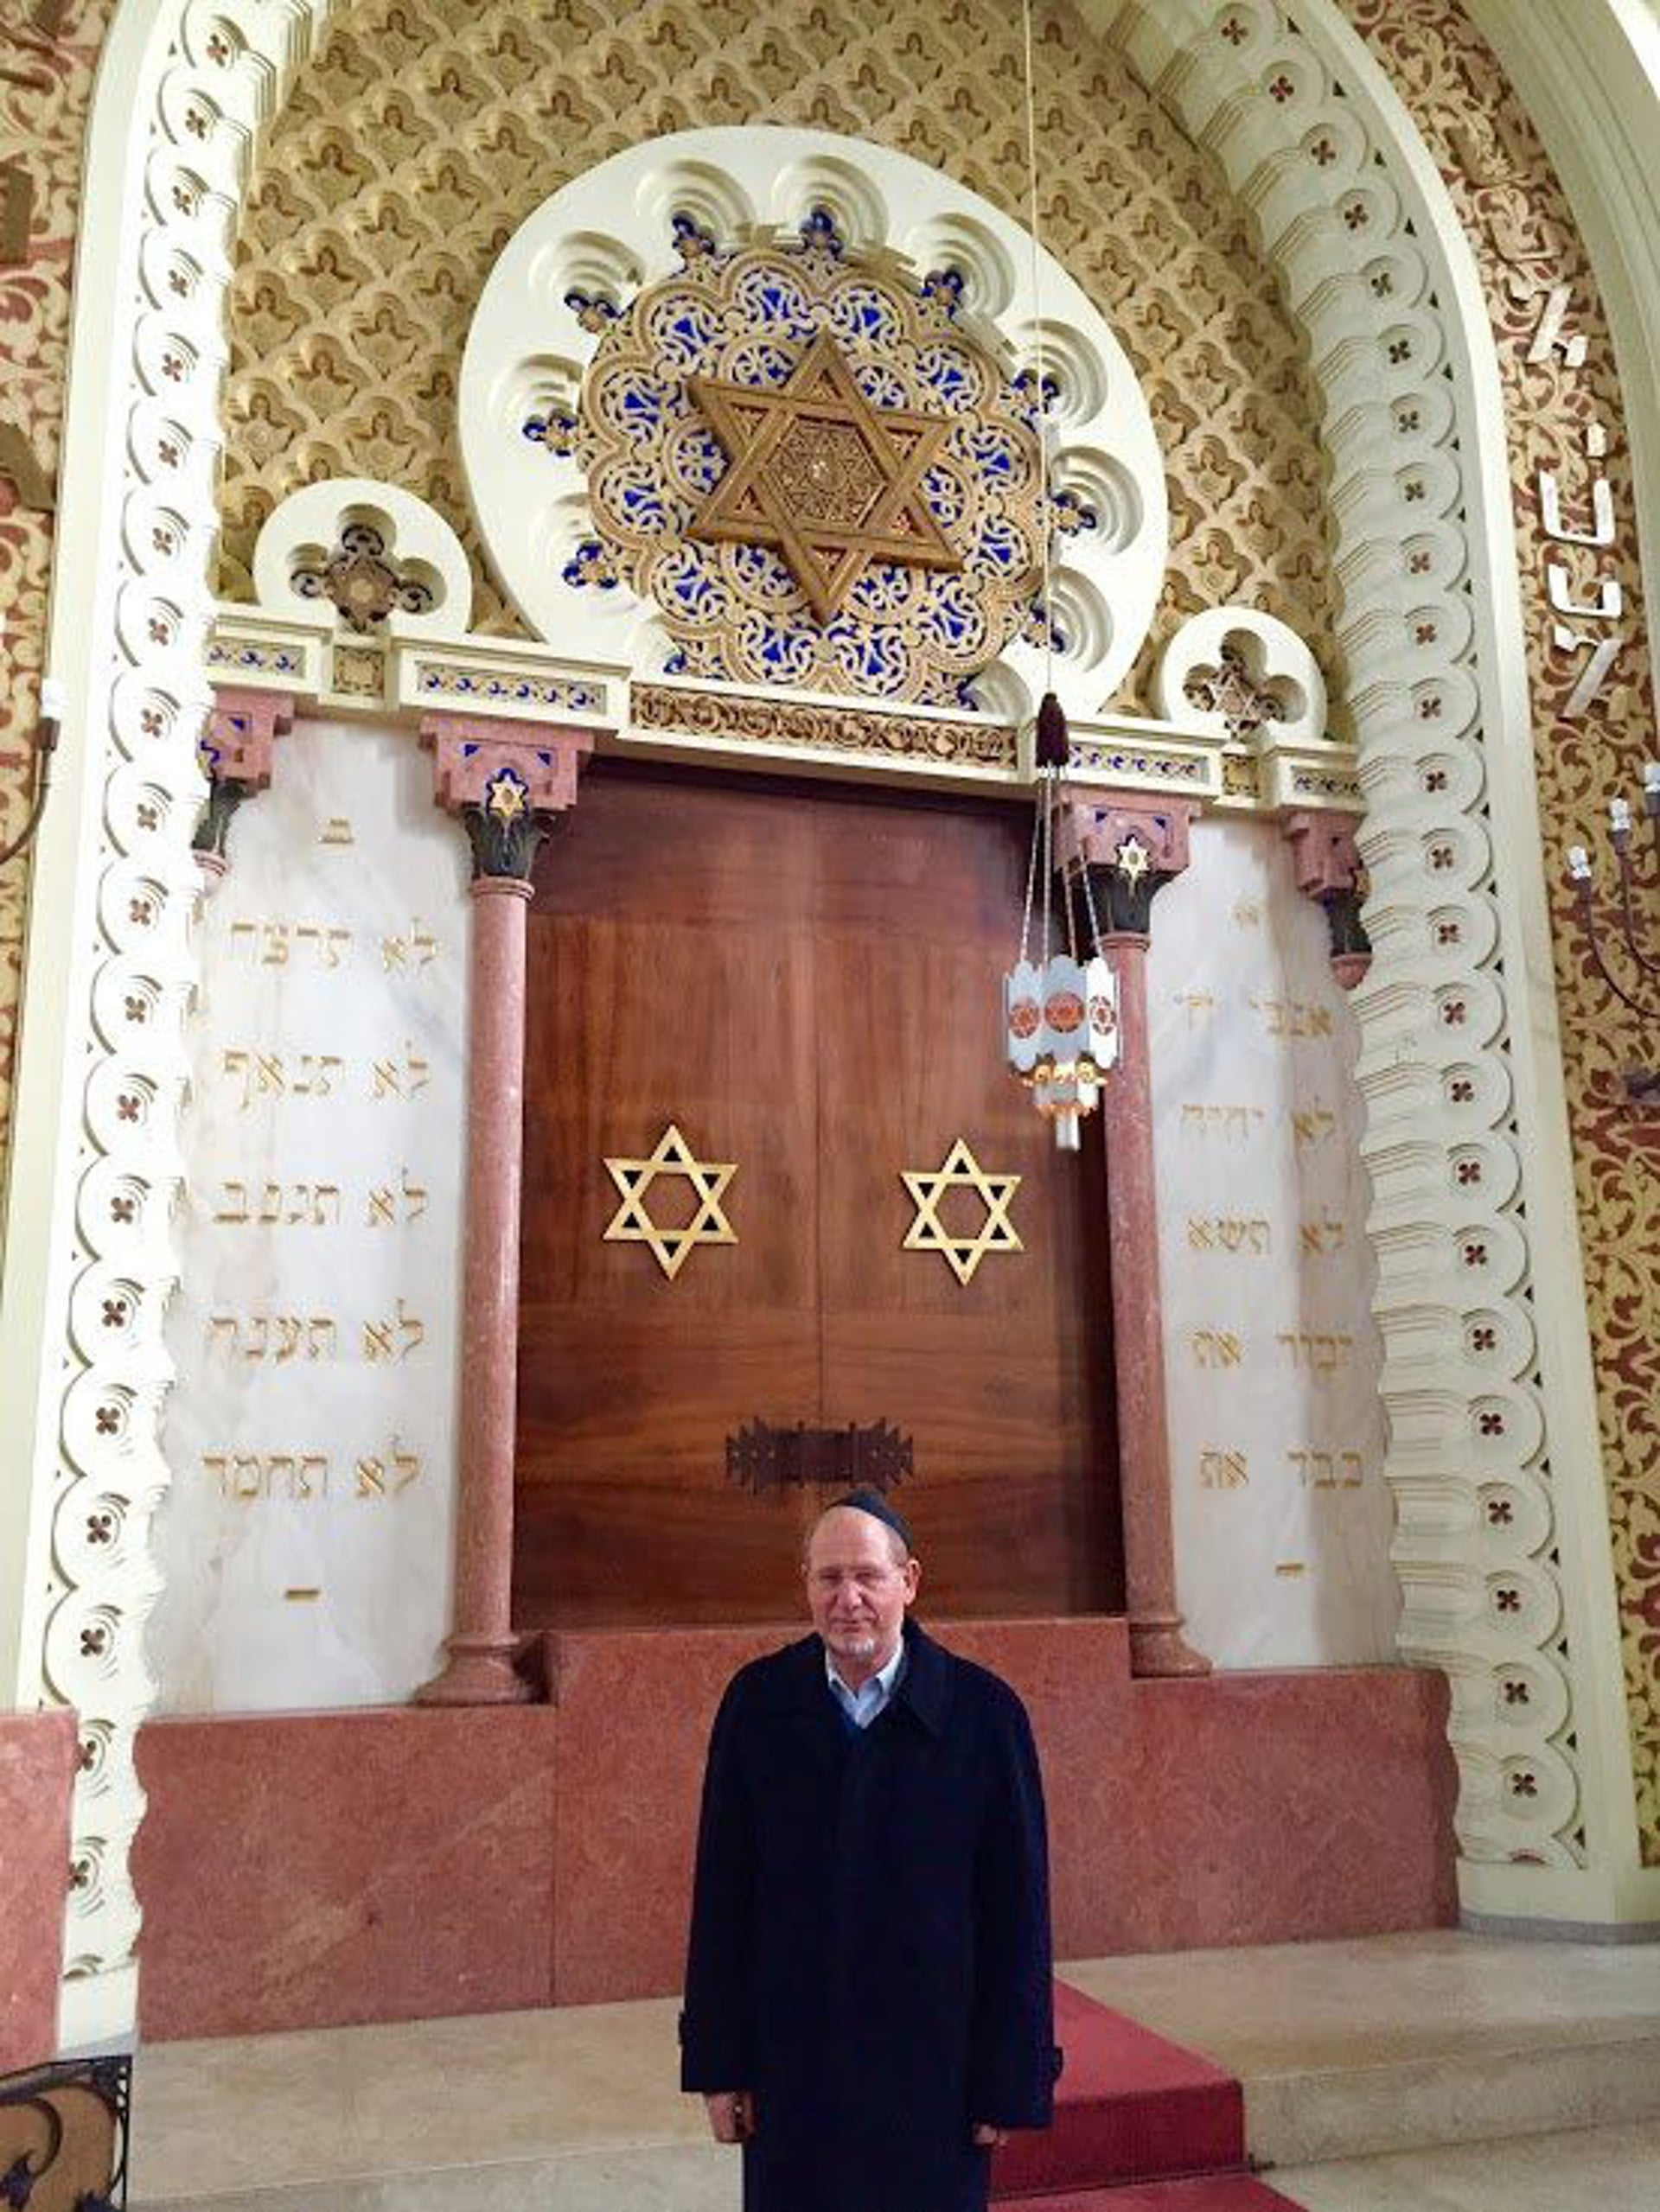 Michael Rothwell, spokesman of the Jewish community of Porto, before the ark in the Mekor Haim synagogue, February 2016.